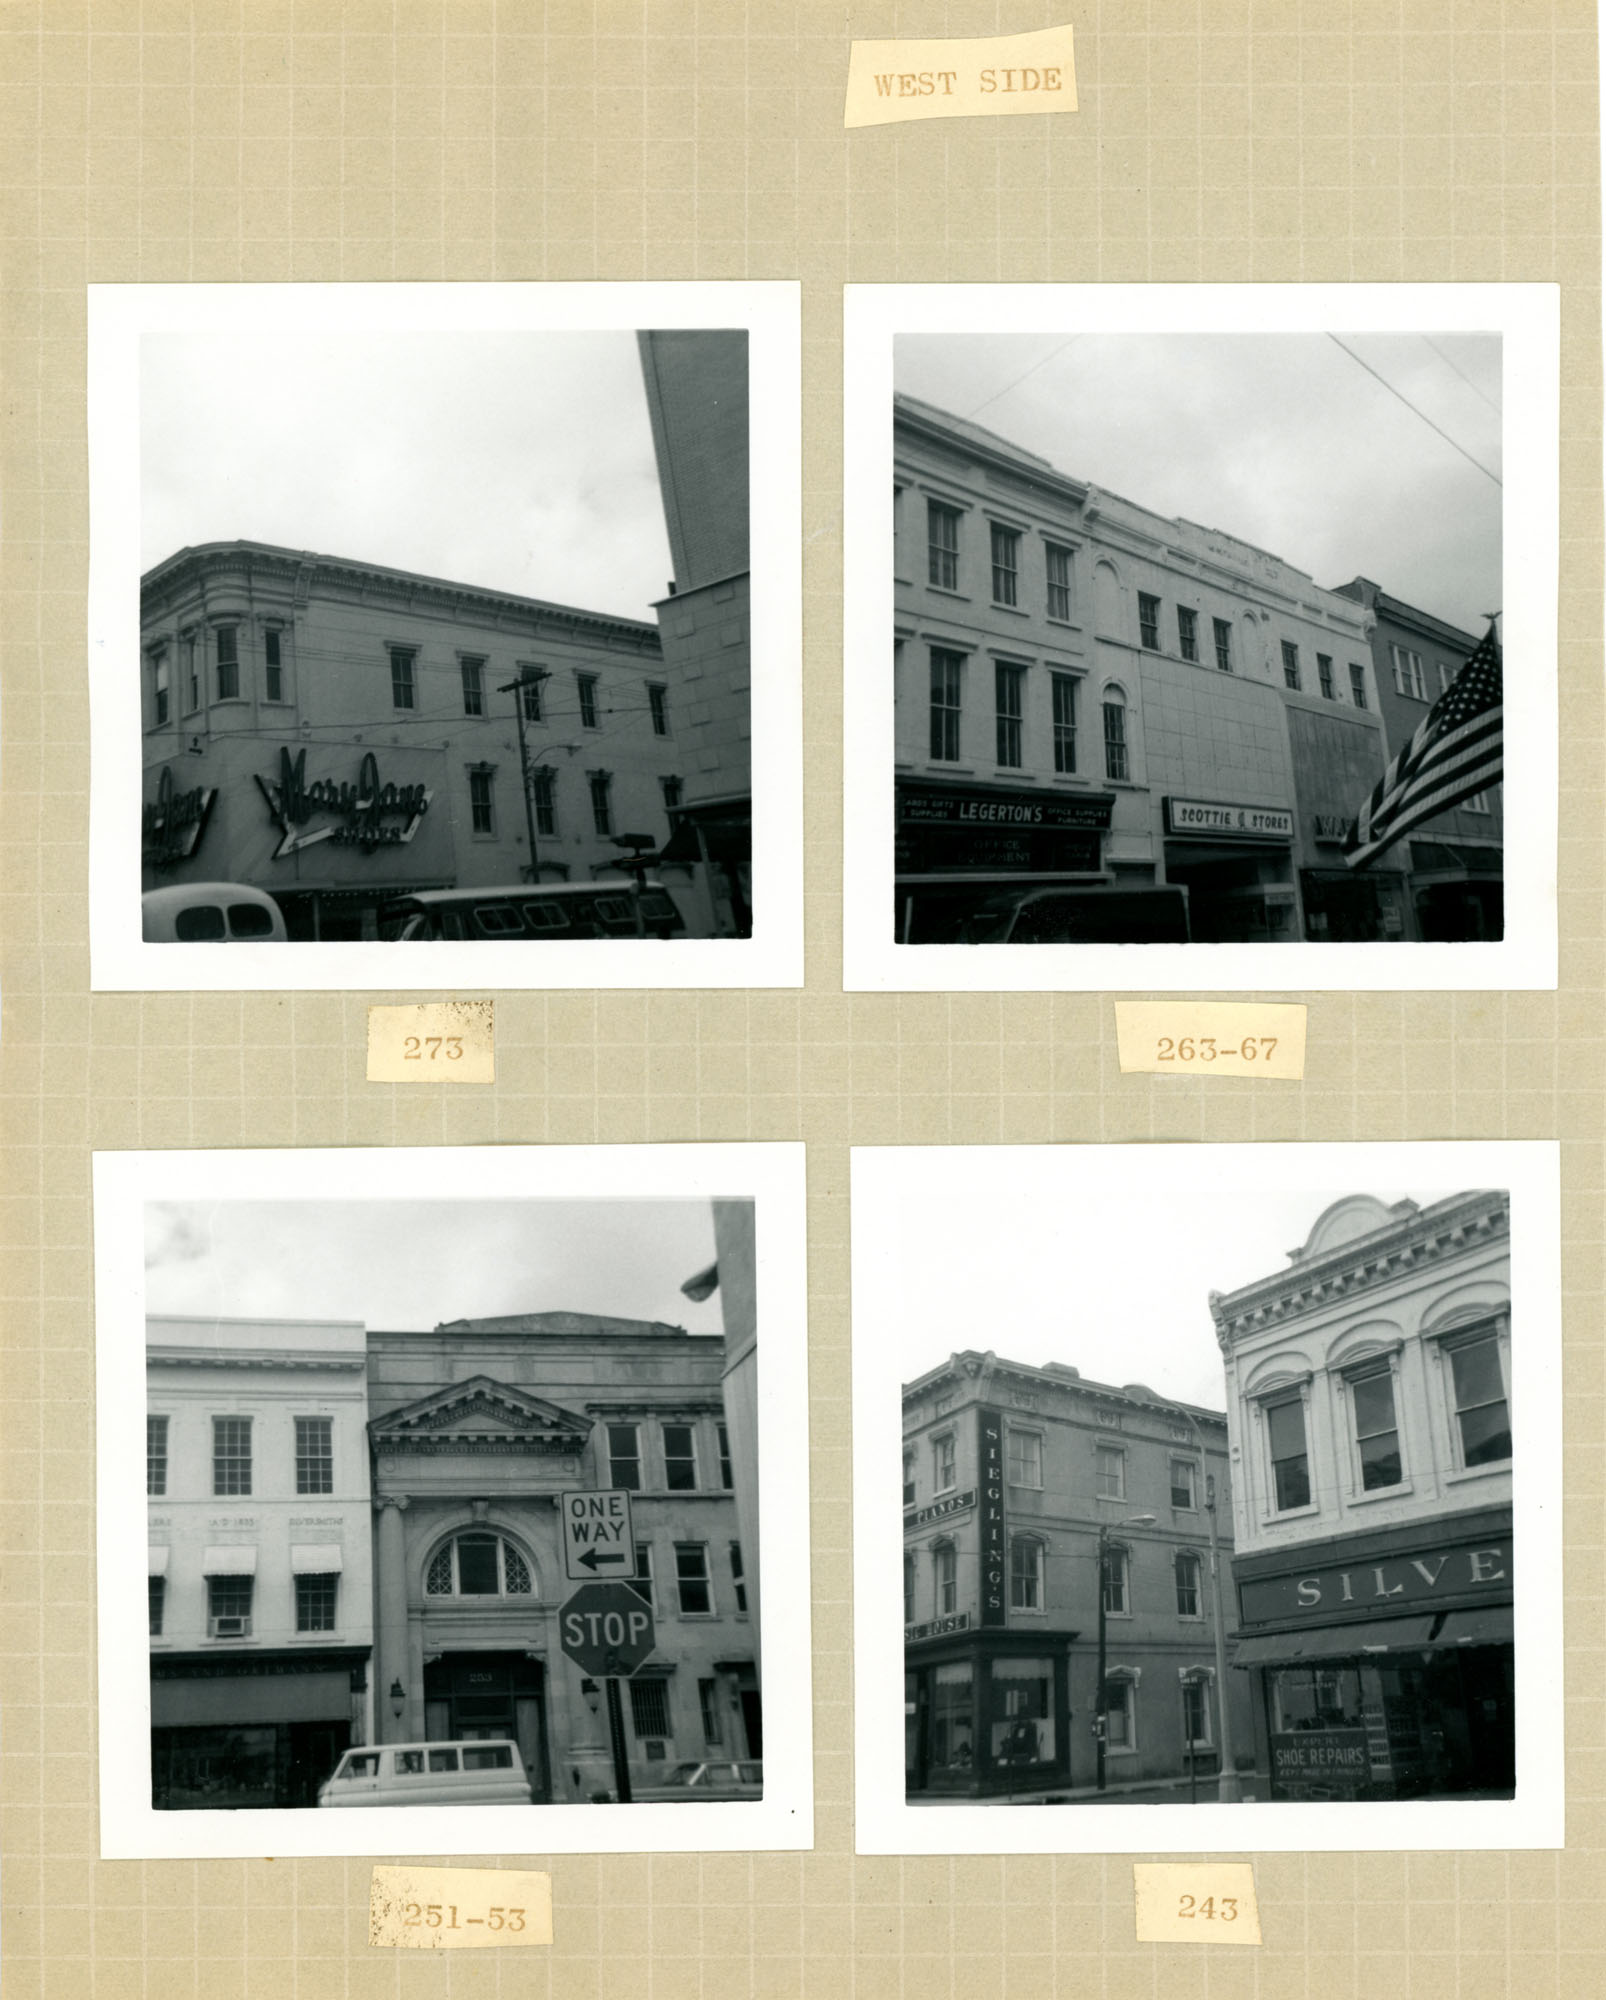 King Street Survey Photo Album, Page 6 (back): 243-273 King Street